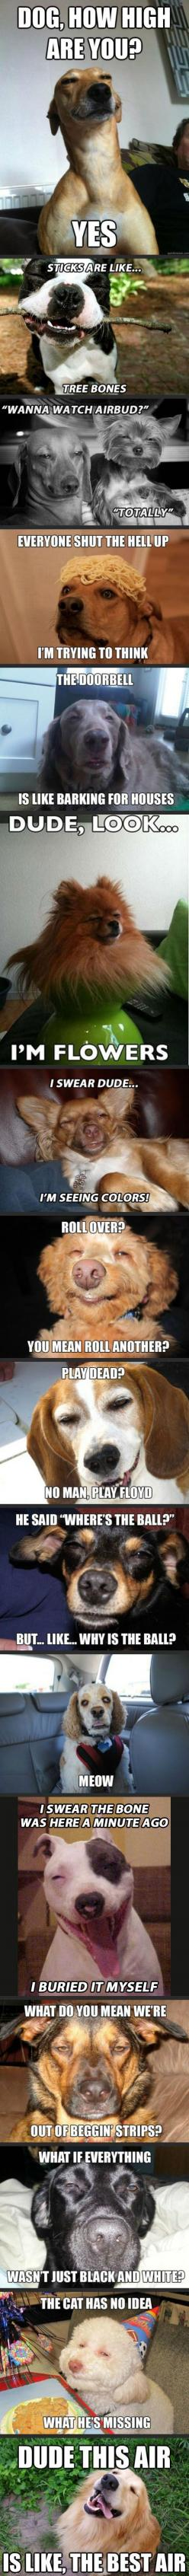 #Dogs, #Faces, #Funny: Animals, Funny Dogs, Stoned Dogs, Stoner Dog, High Dogs, Funny Stuff, Funnies, So Funny